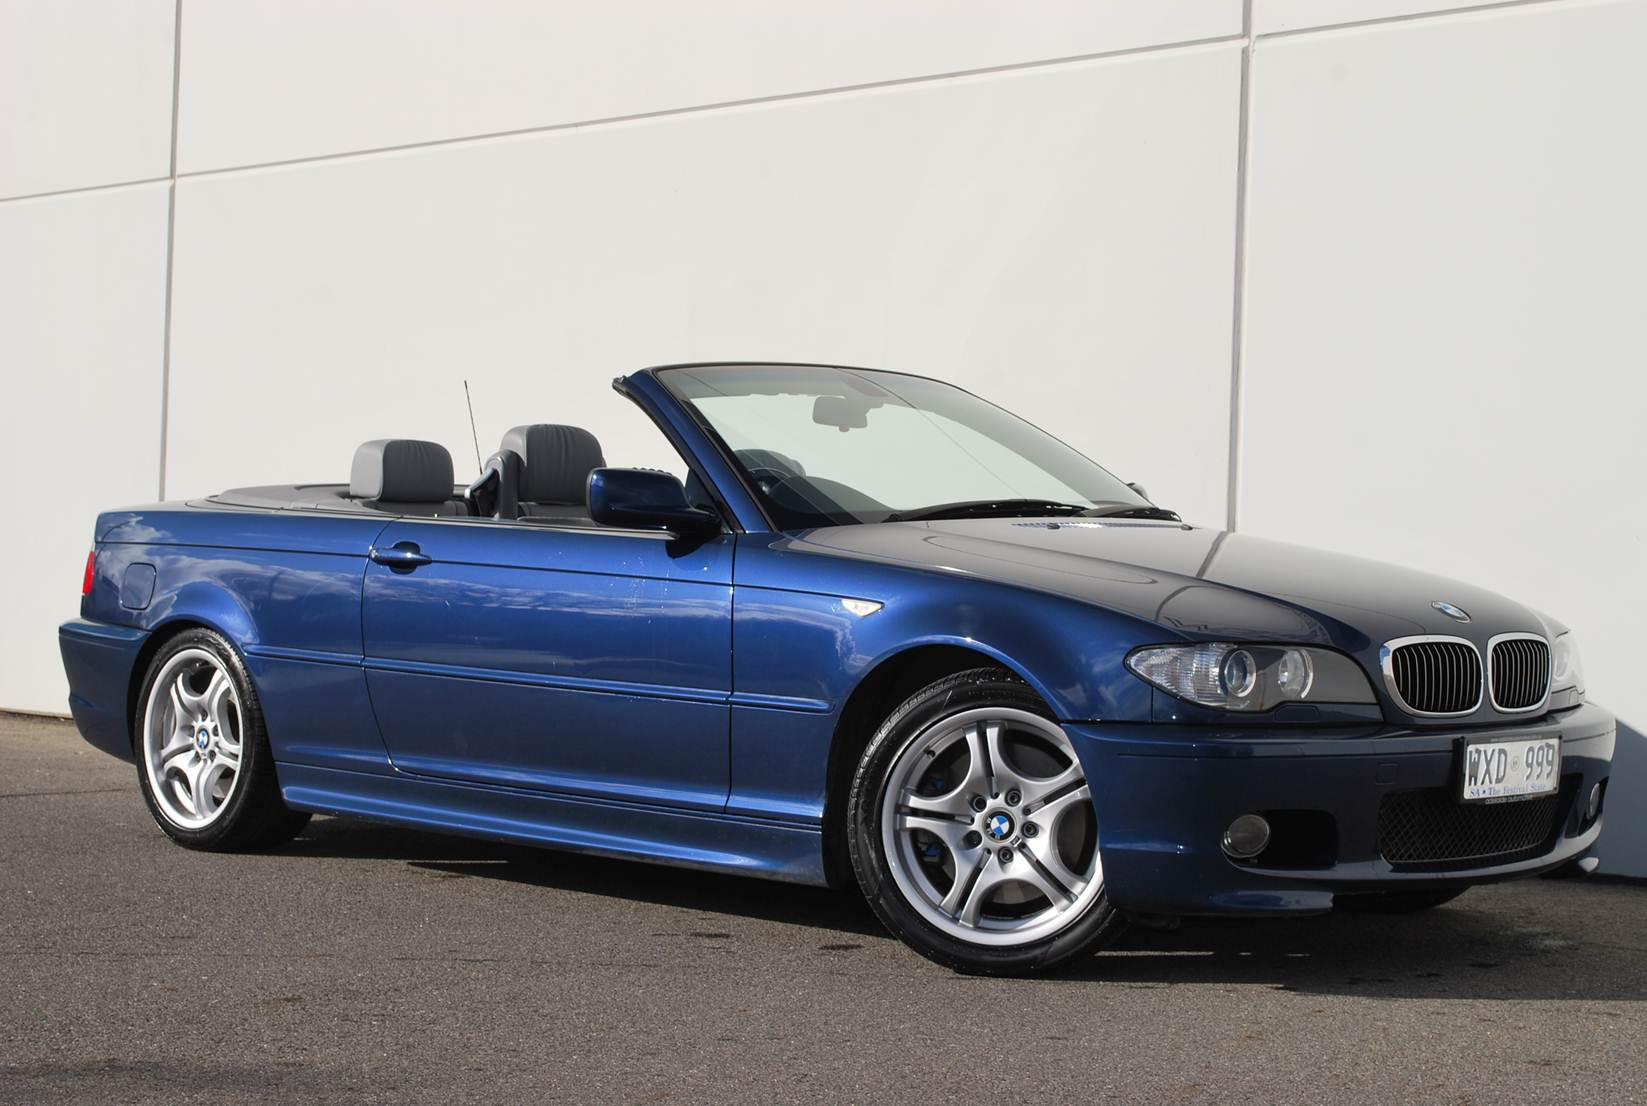 Our 2003 BMW E46 convertible is for sale